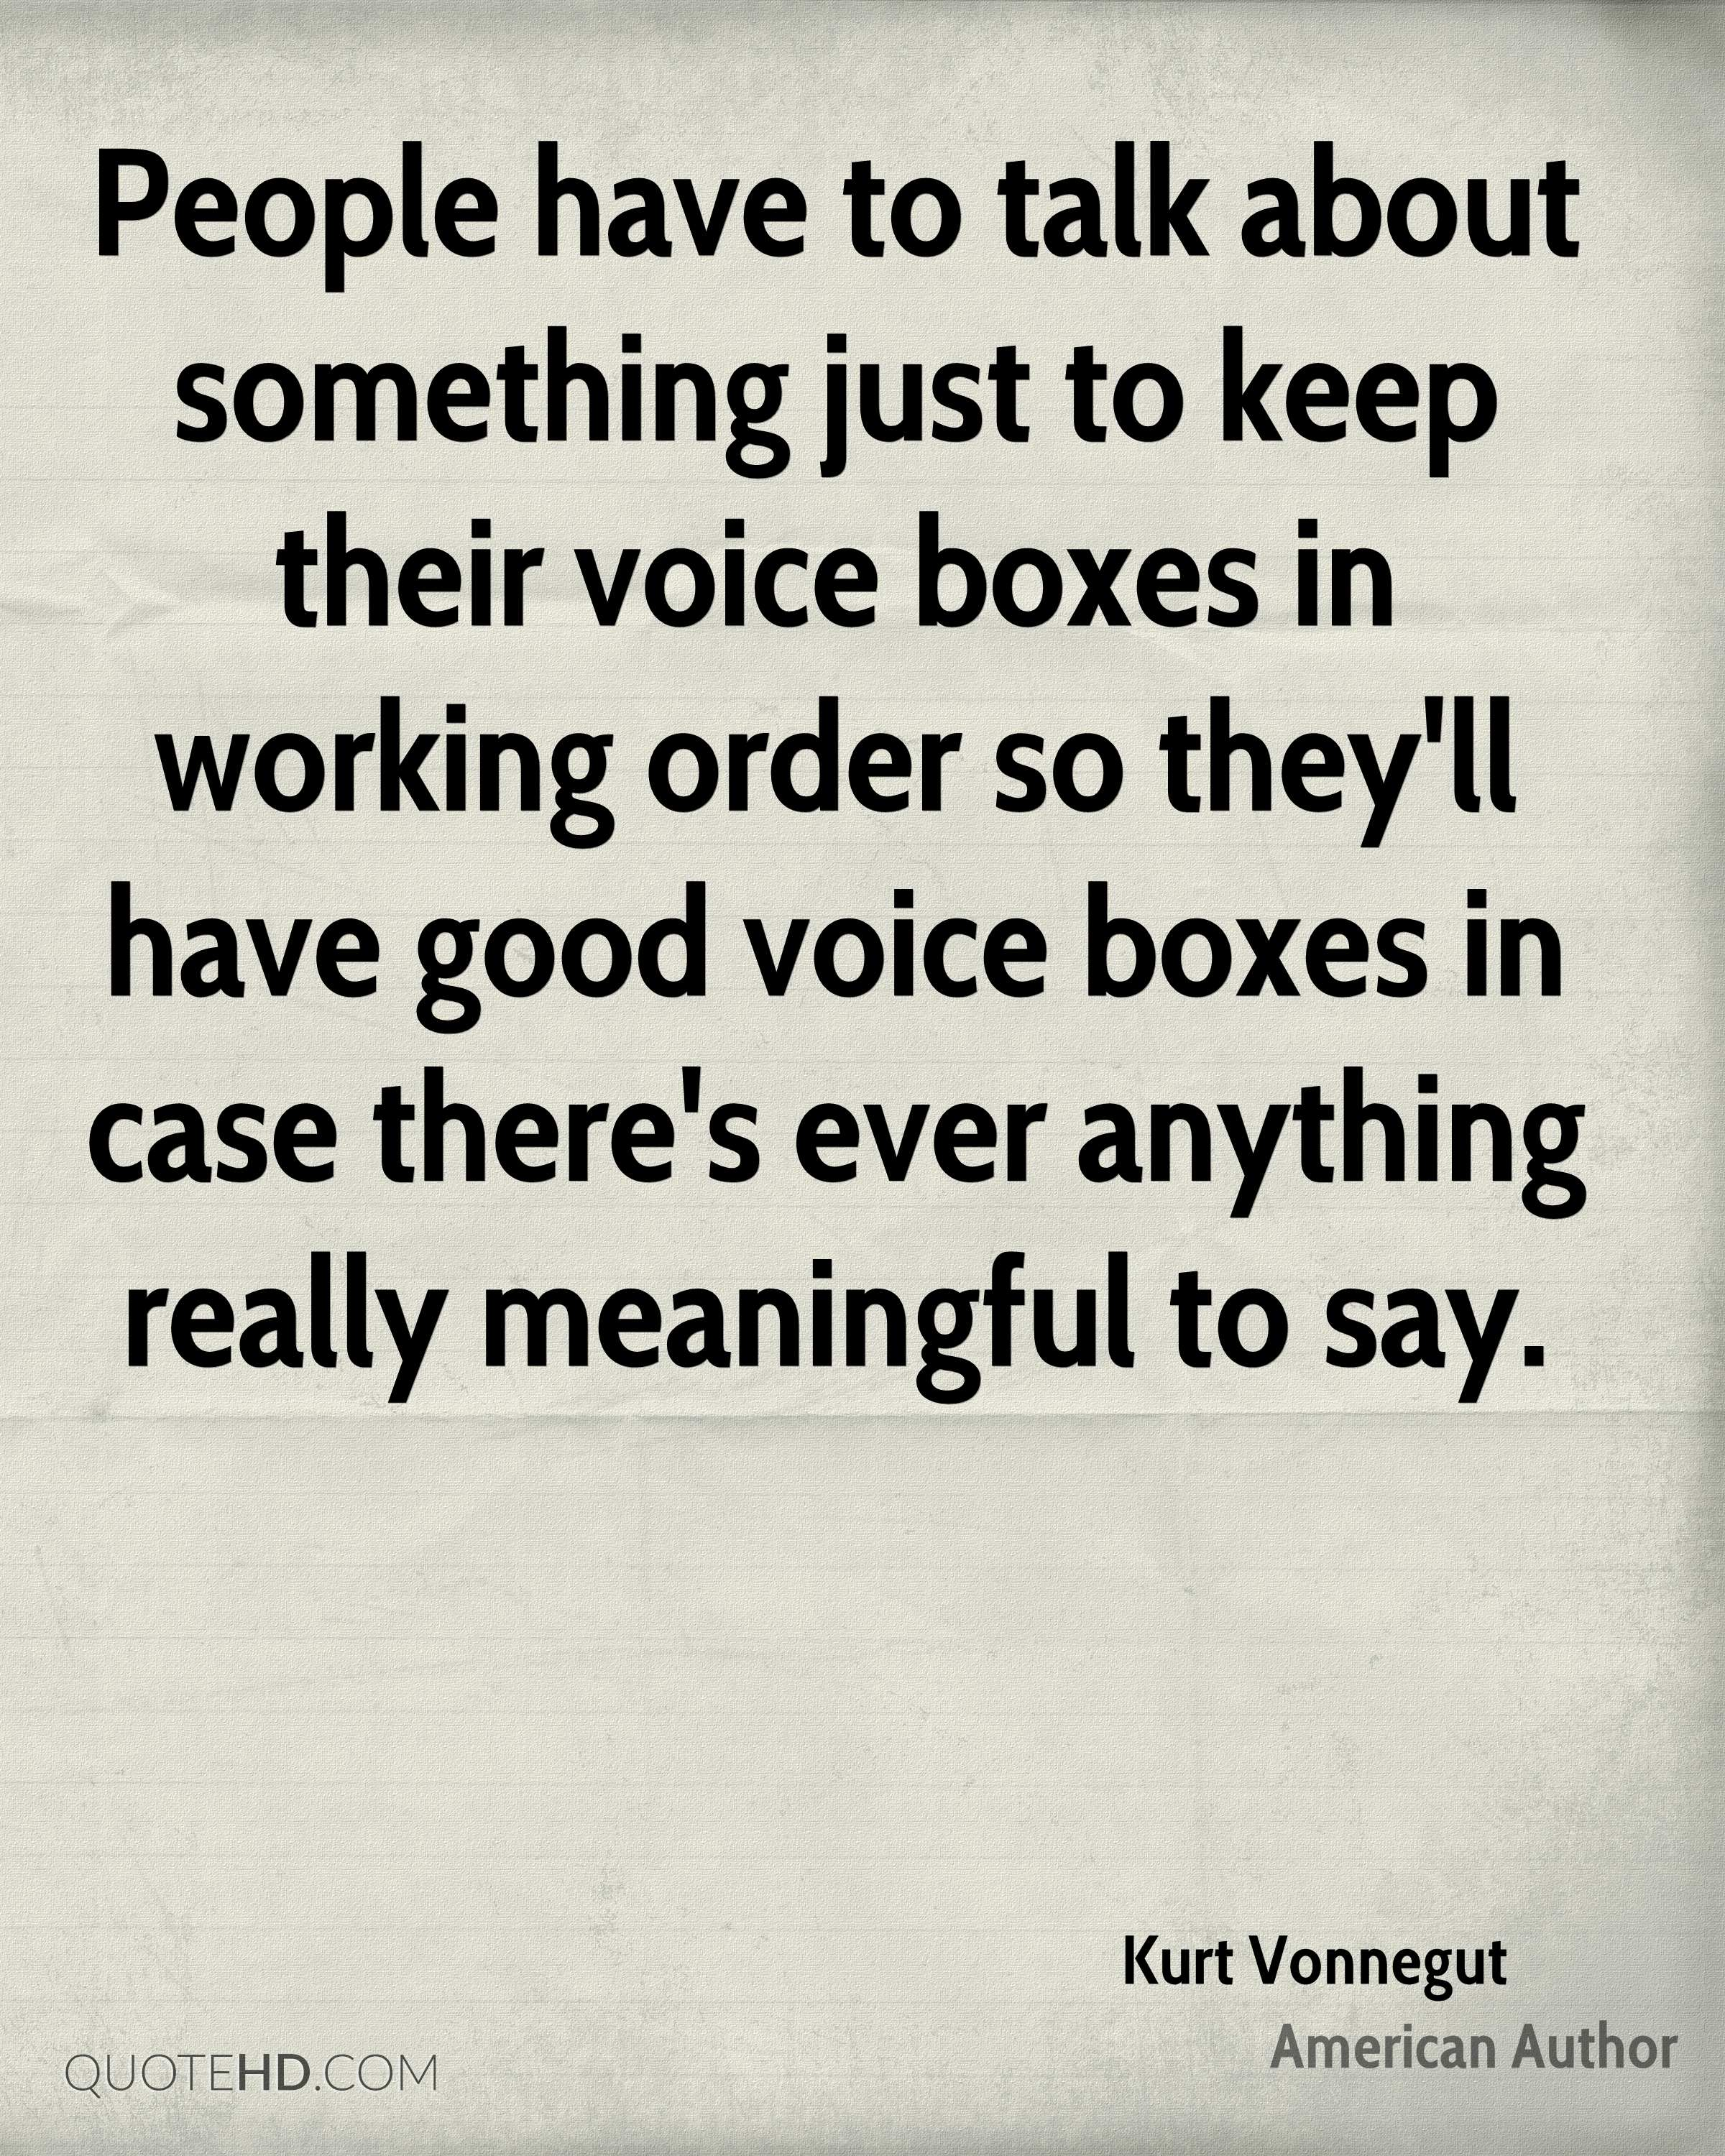 People have to talk about something just to keep their voice boxes in working order so they'll have good voice boxes in case there's ever anything really meaningful to say.